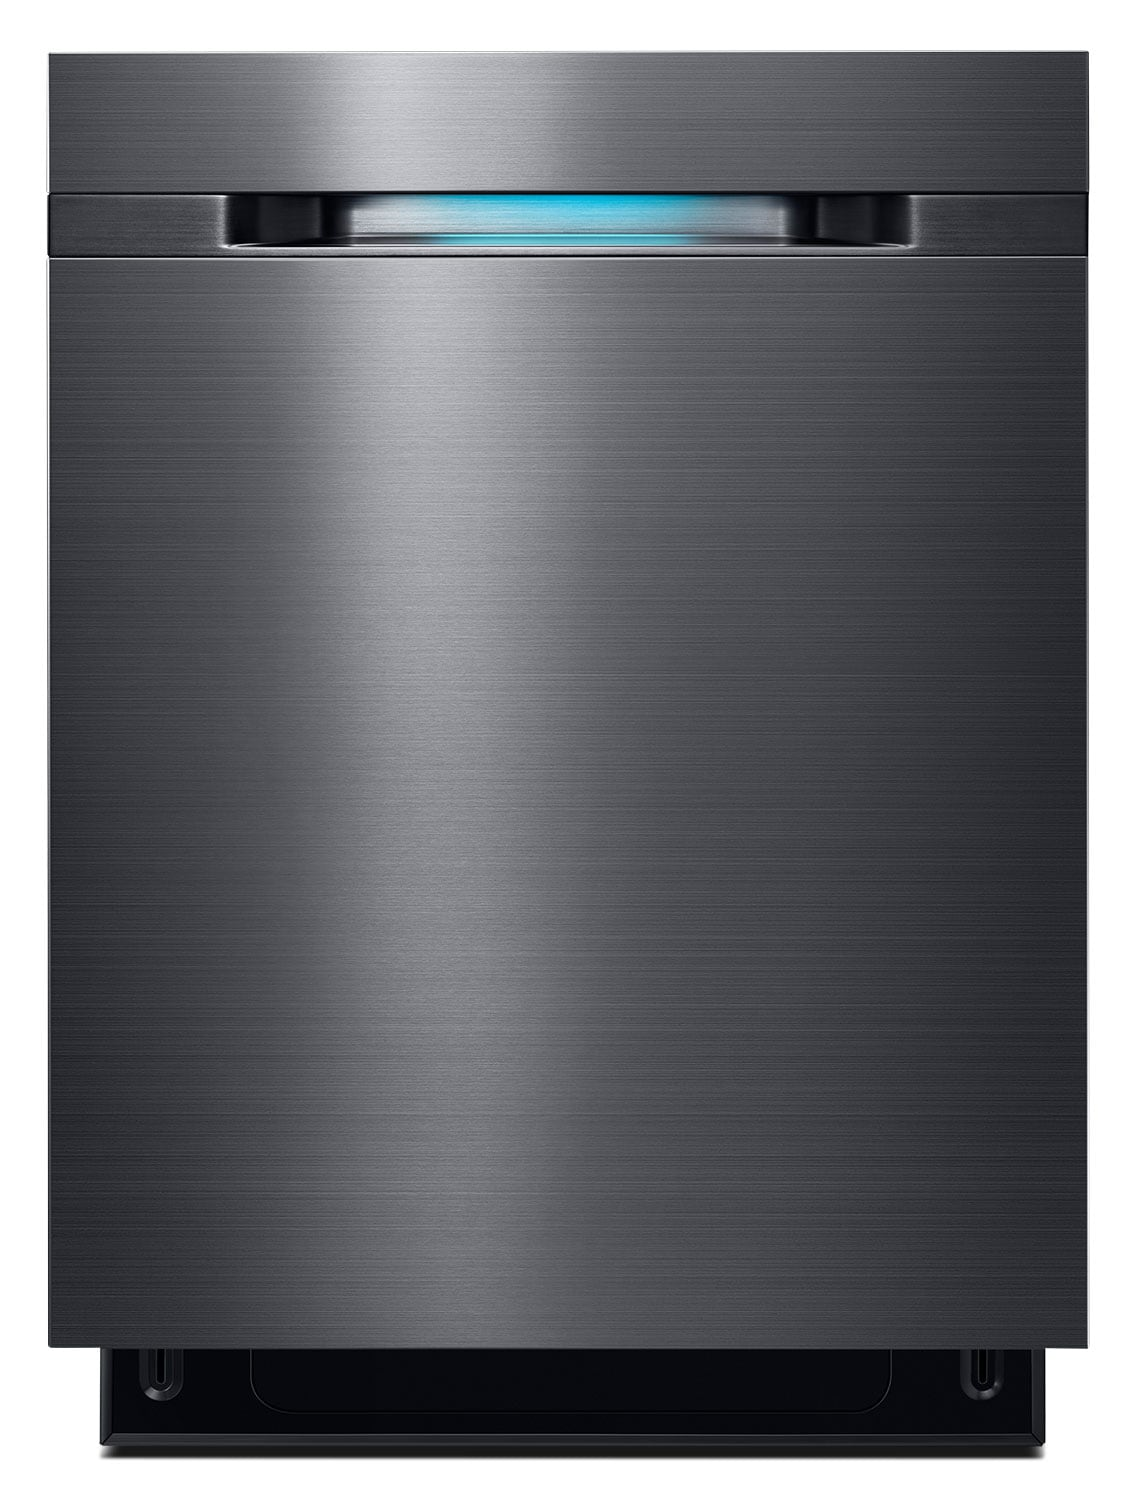 "Clean-Up - Samsung 24"" Built-In Dishwasher – Black Stainless Steel DW80J7550UG/AC"